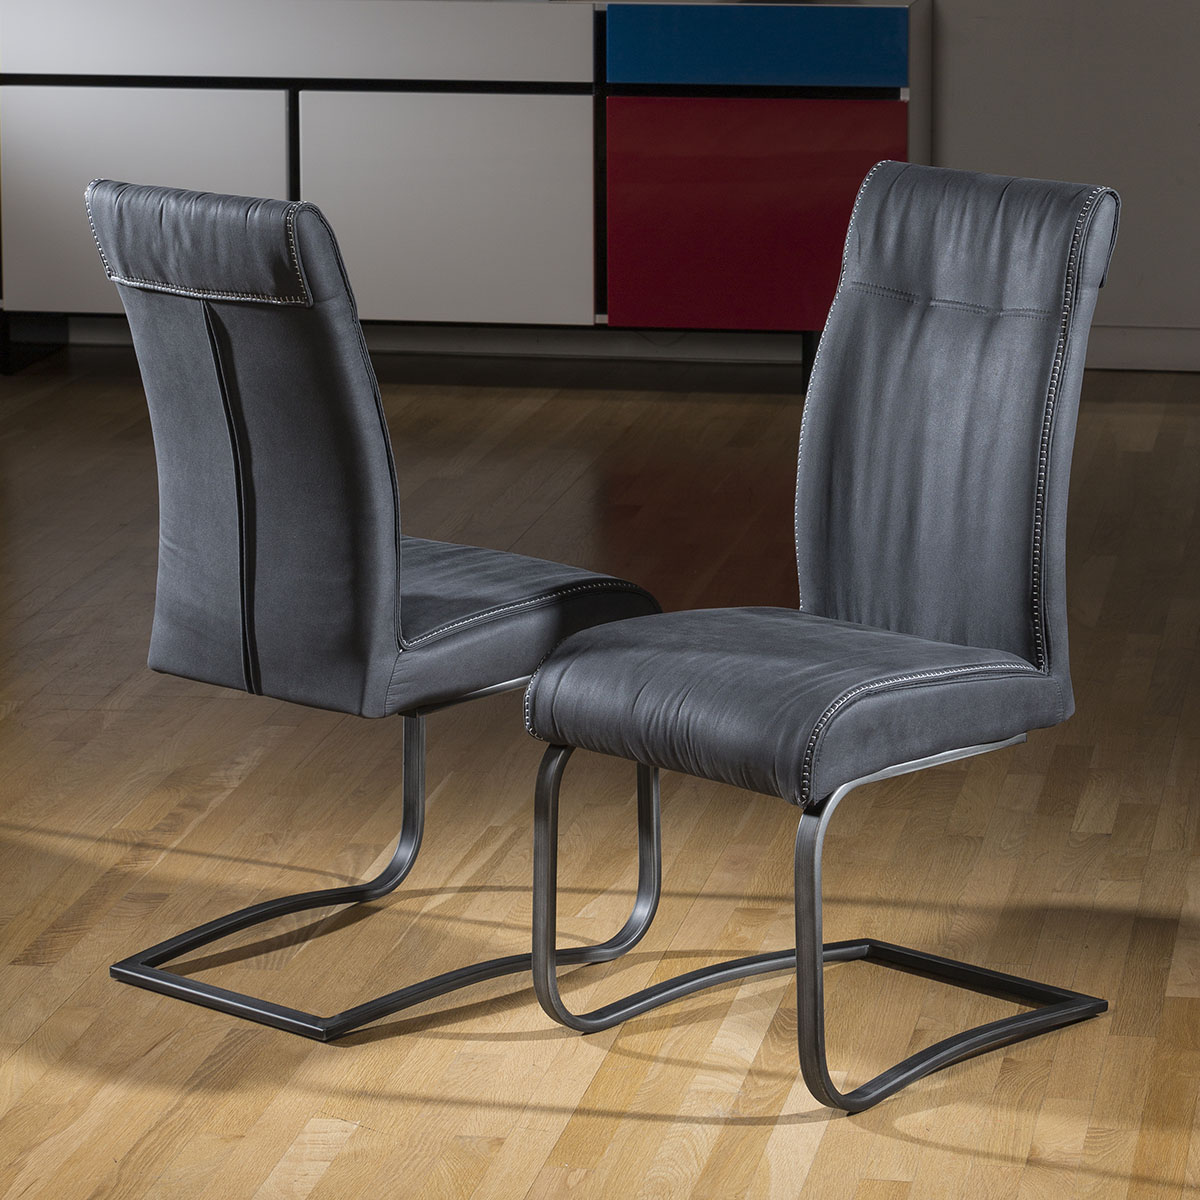 Pair of 2 extra large super comfy padded dining chair grey for Grey comfy chair